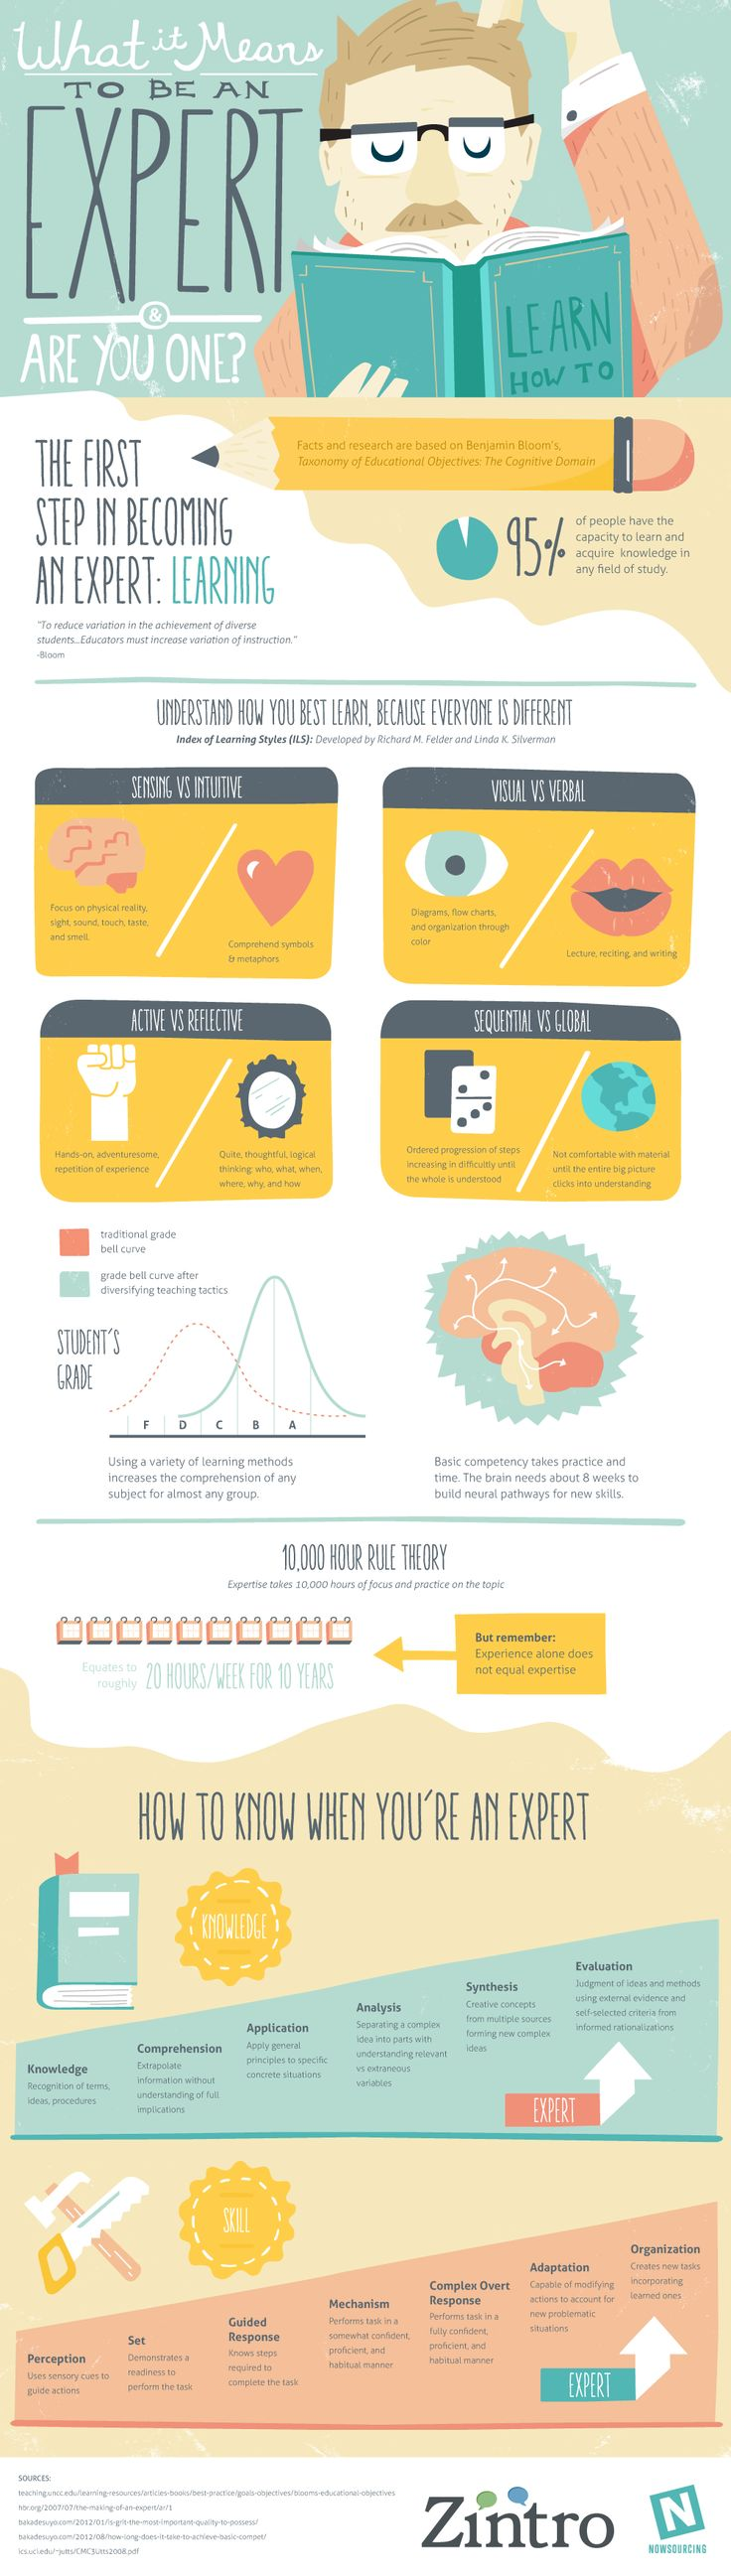 What it Means To Be An Expert And Are You One?   #Expert  #infographic #HowToBecomeAnExpert